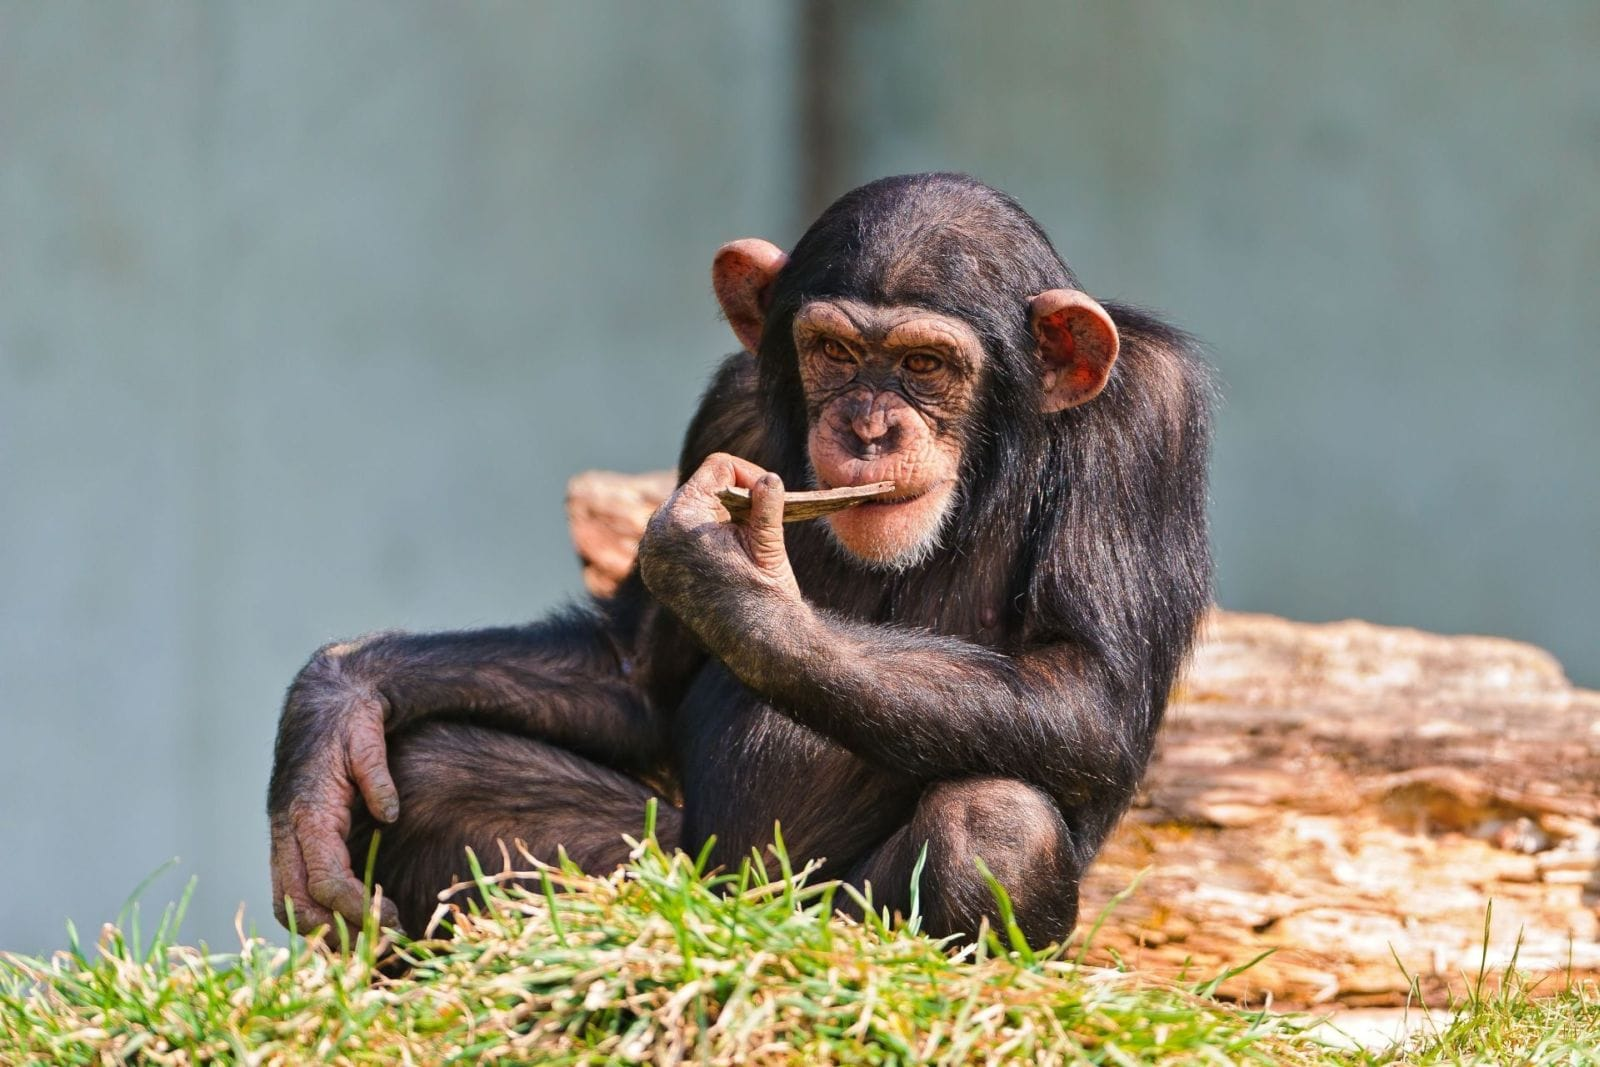 Chimpanzee Wide wallpapers